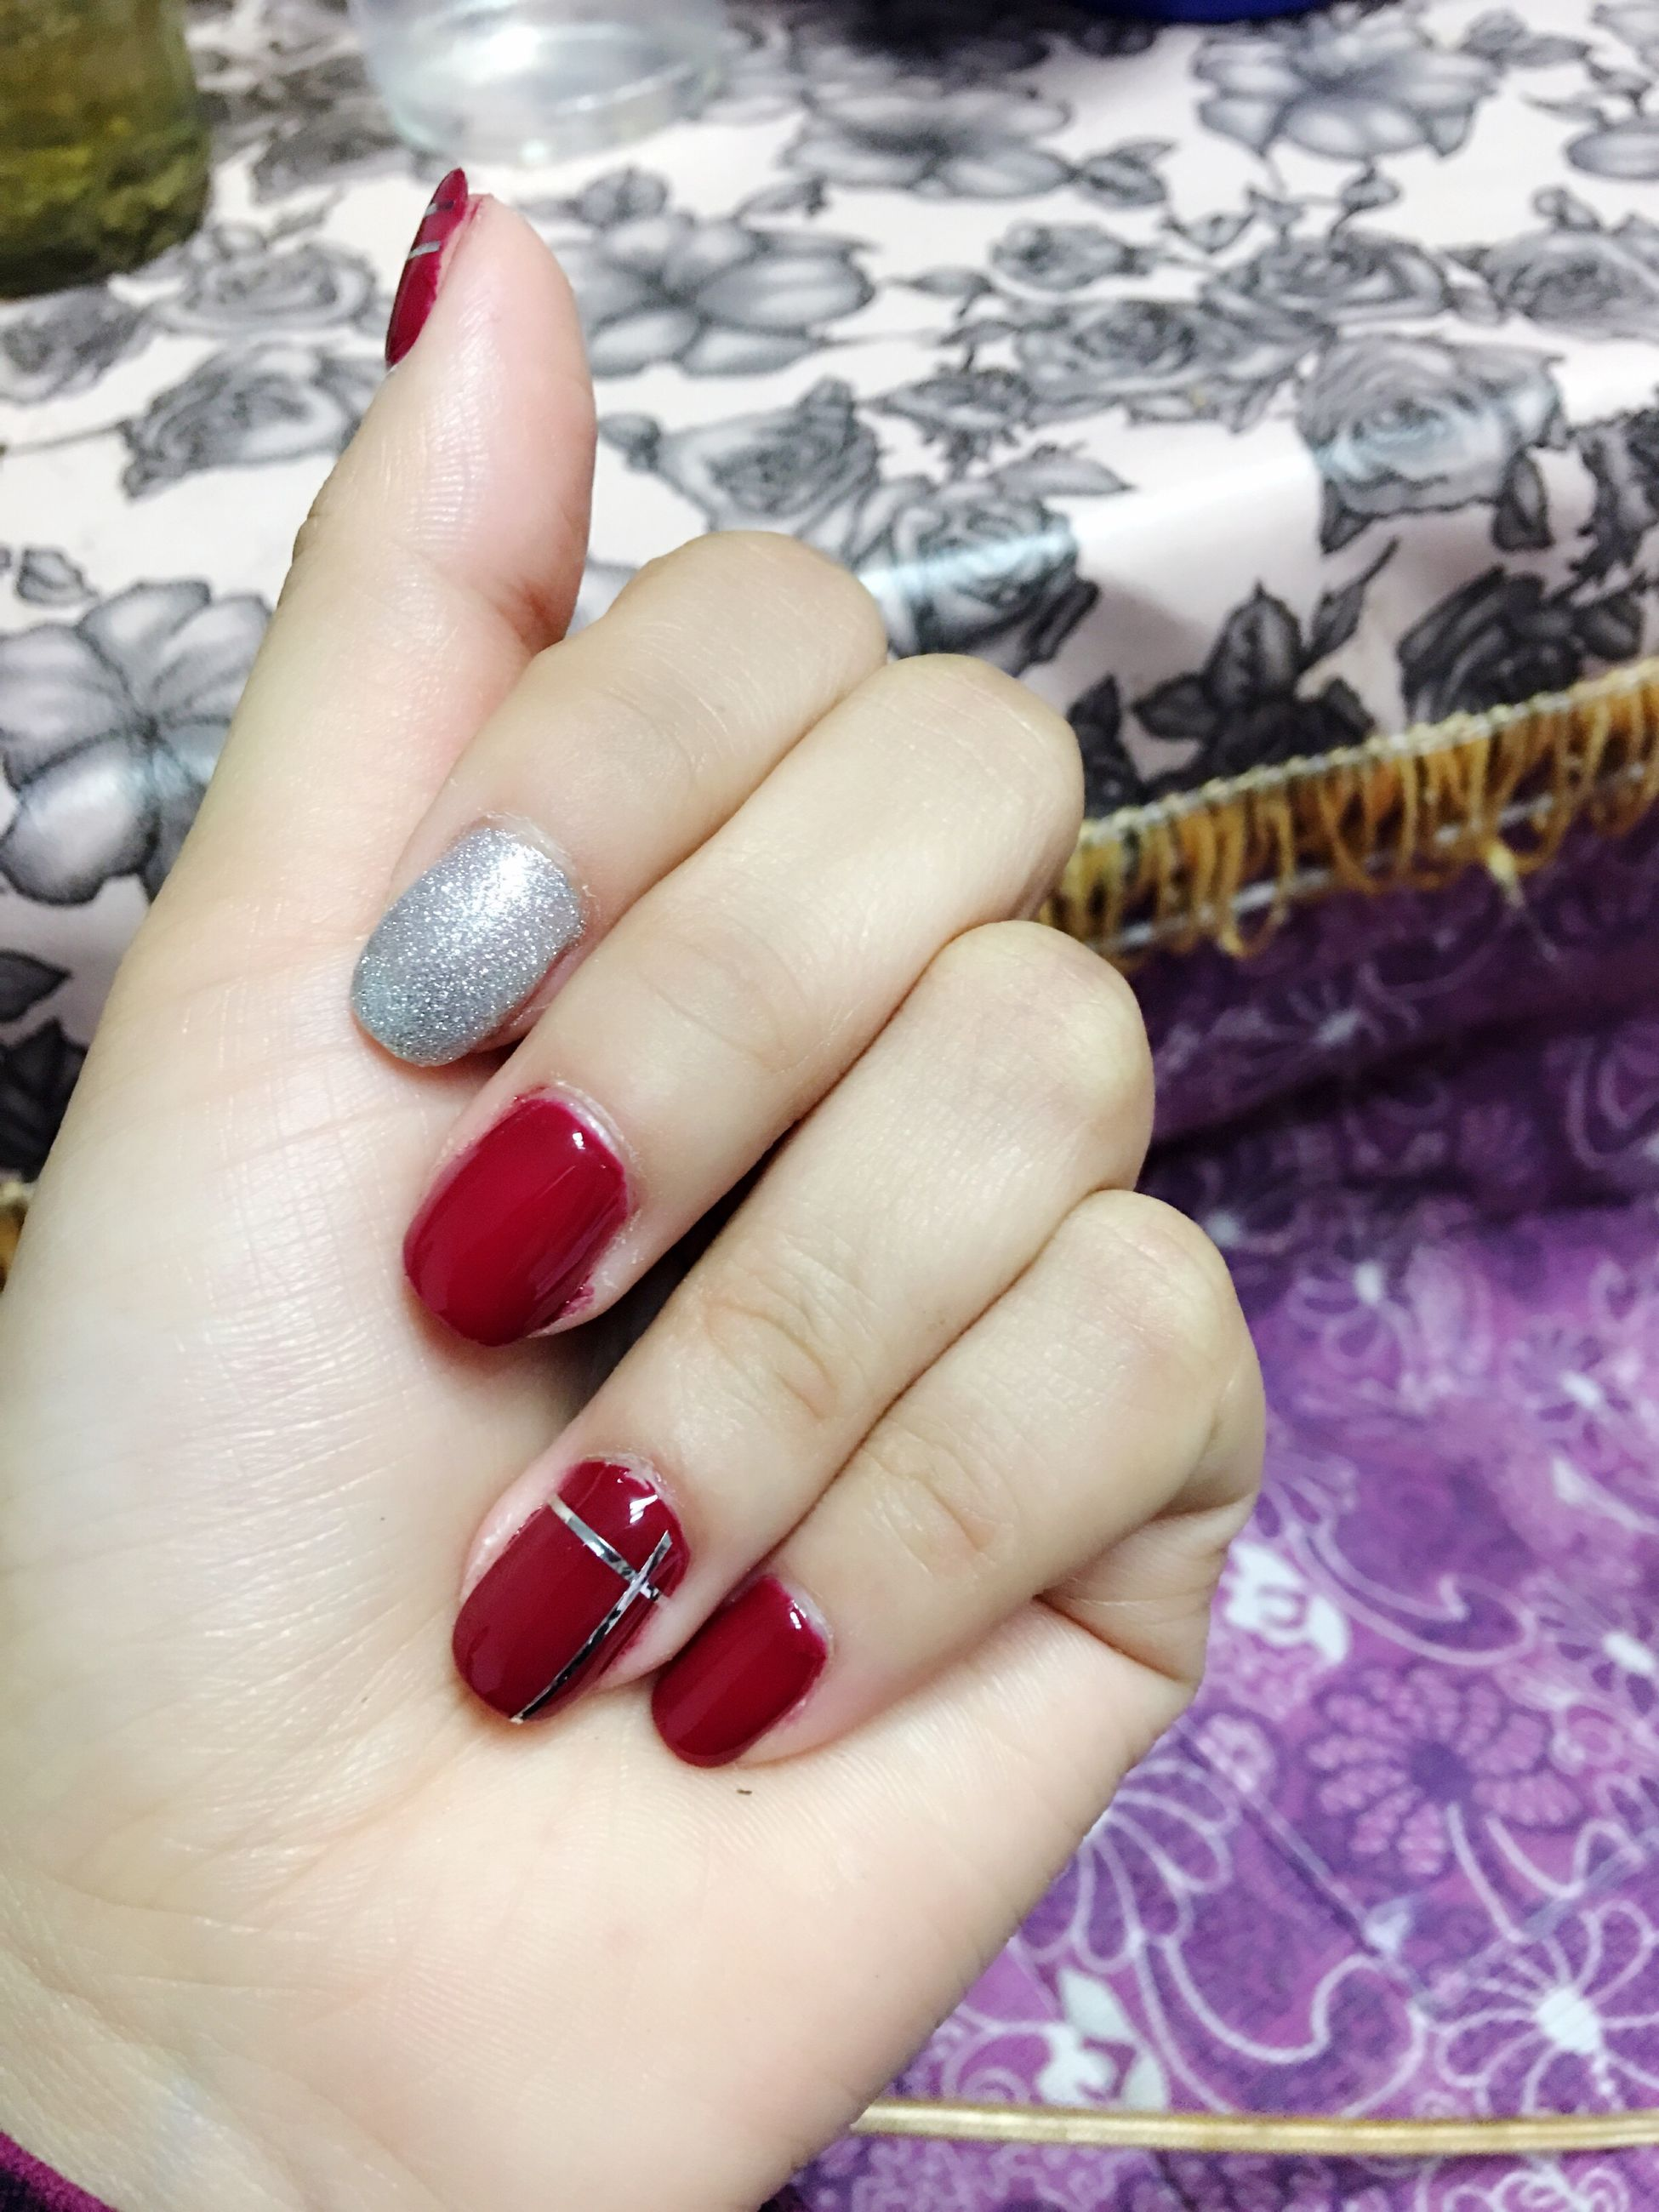 human hand, nail polish, human body part, human finger, red, fingernail, beauty, red nail polish, close-up, lifestyles, nail art, manicure, women, snow, adult, only women, winter, one woman only, one person, people, adults only, real people, cold temperature, outdoors, day